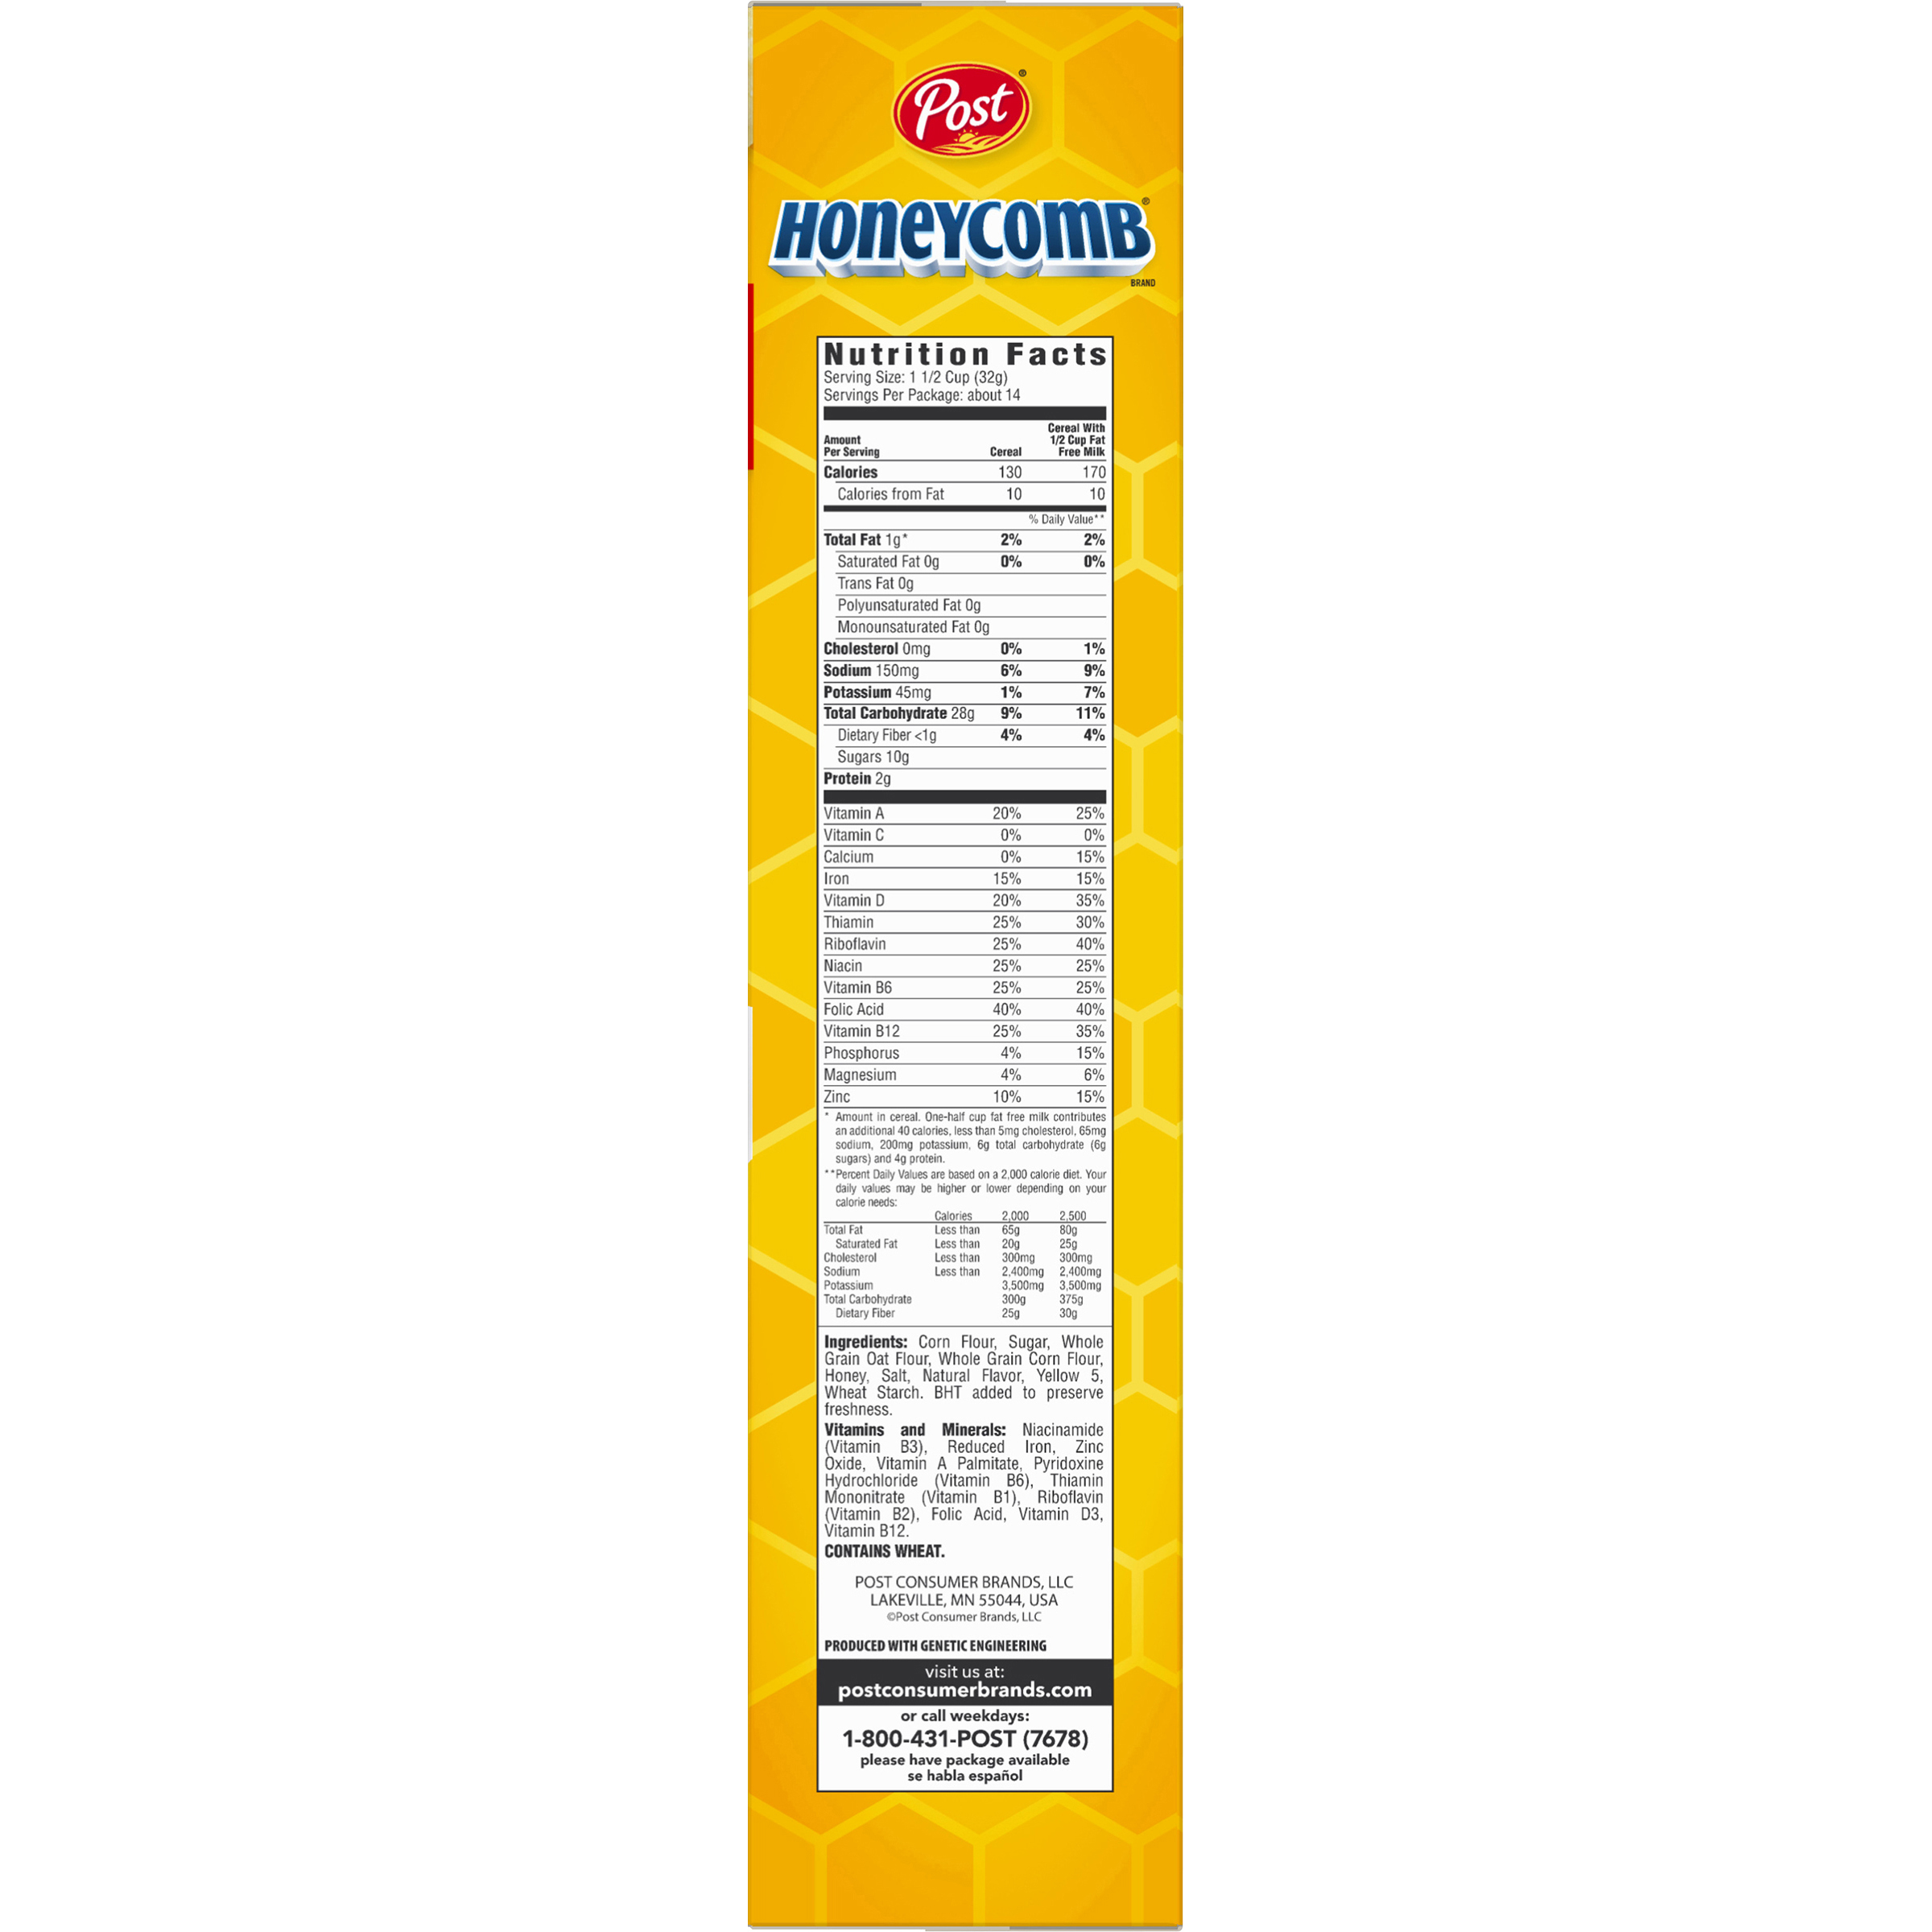 Honeycomb Cereal Nutrition Information